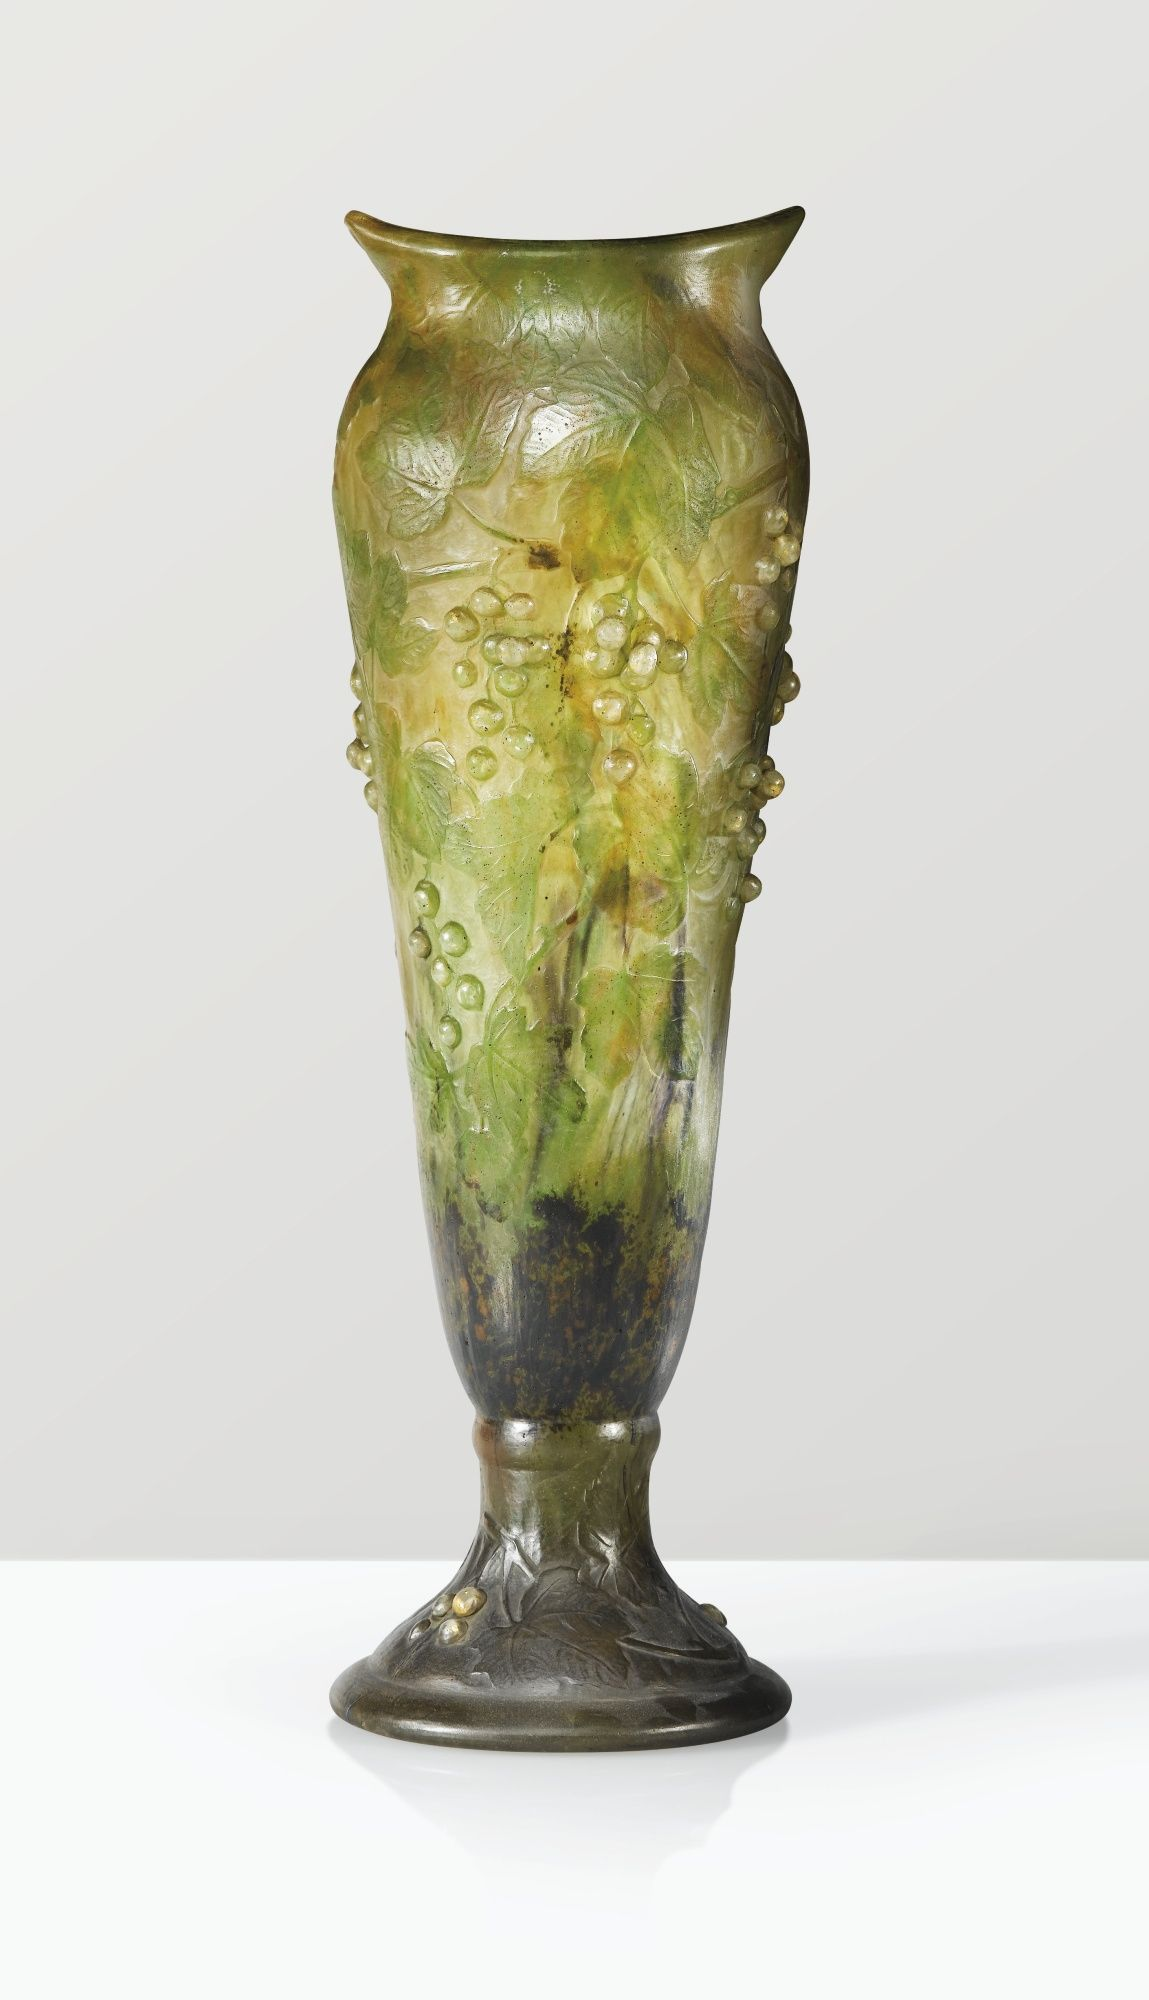 DAUM VASE, VERS 1910 AN INTERNALLY DECORATED, CARVED AND APPLIED CAMEO GLASS VASE BY DAUM, CIRCA 1910. SIGNED WITH A CROSS OF LORRAINE AND NUMBERED